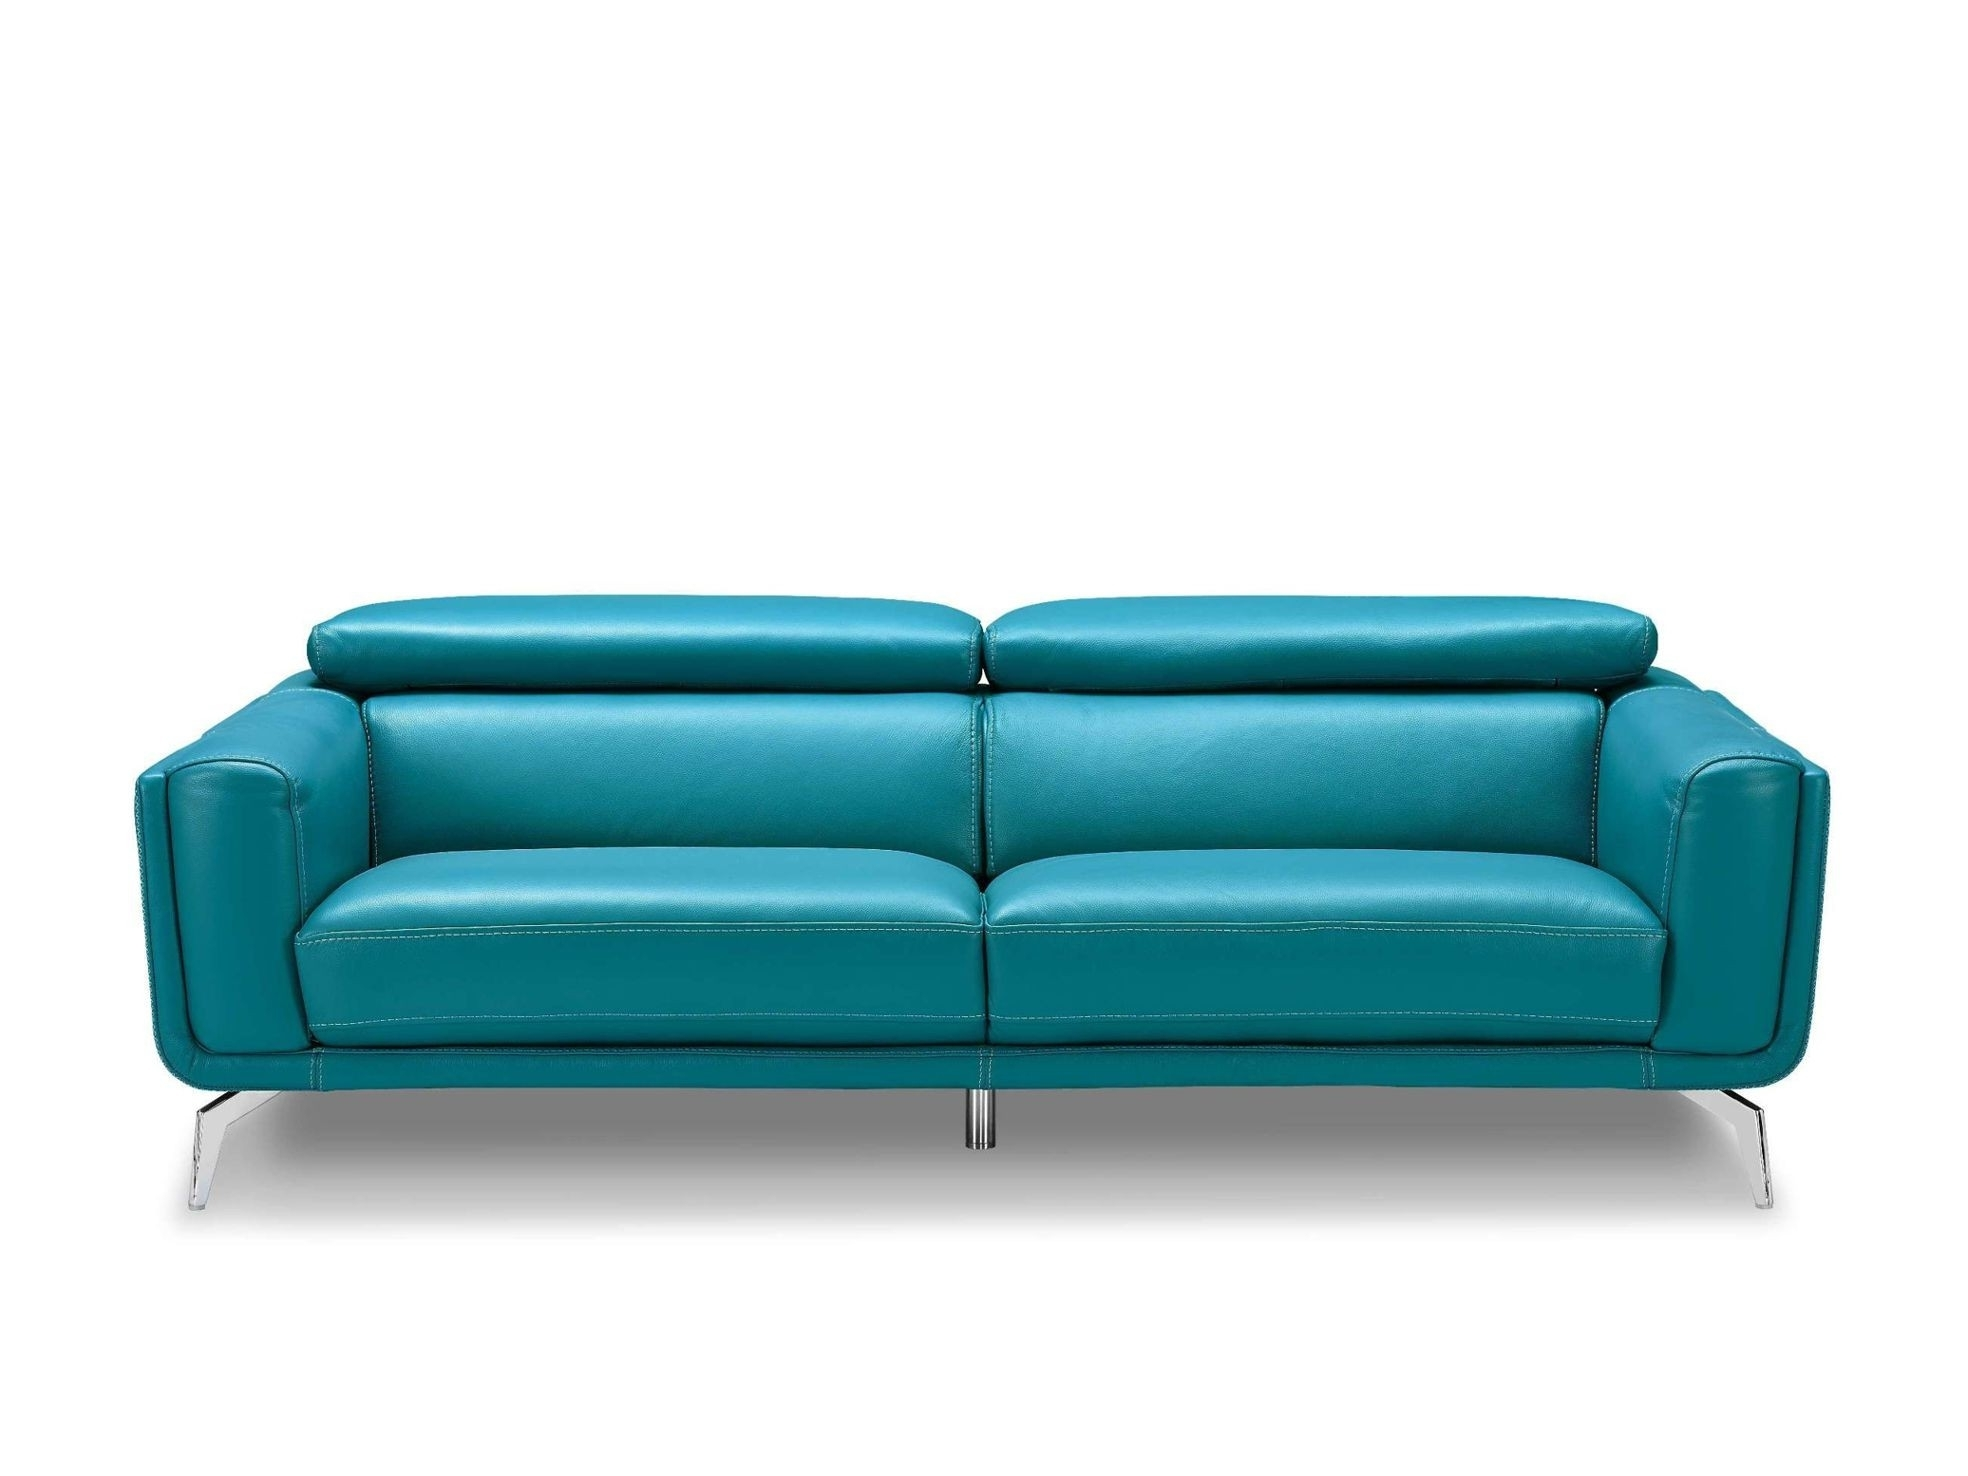 Famous Contemporary Sofas And Chairs For Contemporary Sofas And Chairs Tags : Modern Sofa Recliner Modern (View 9 of 15)